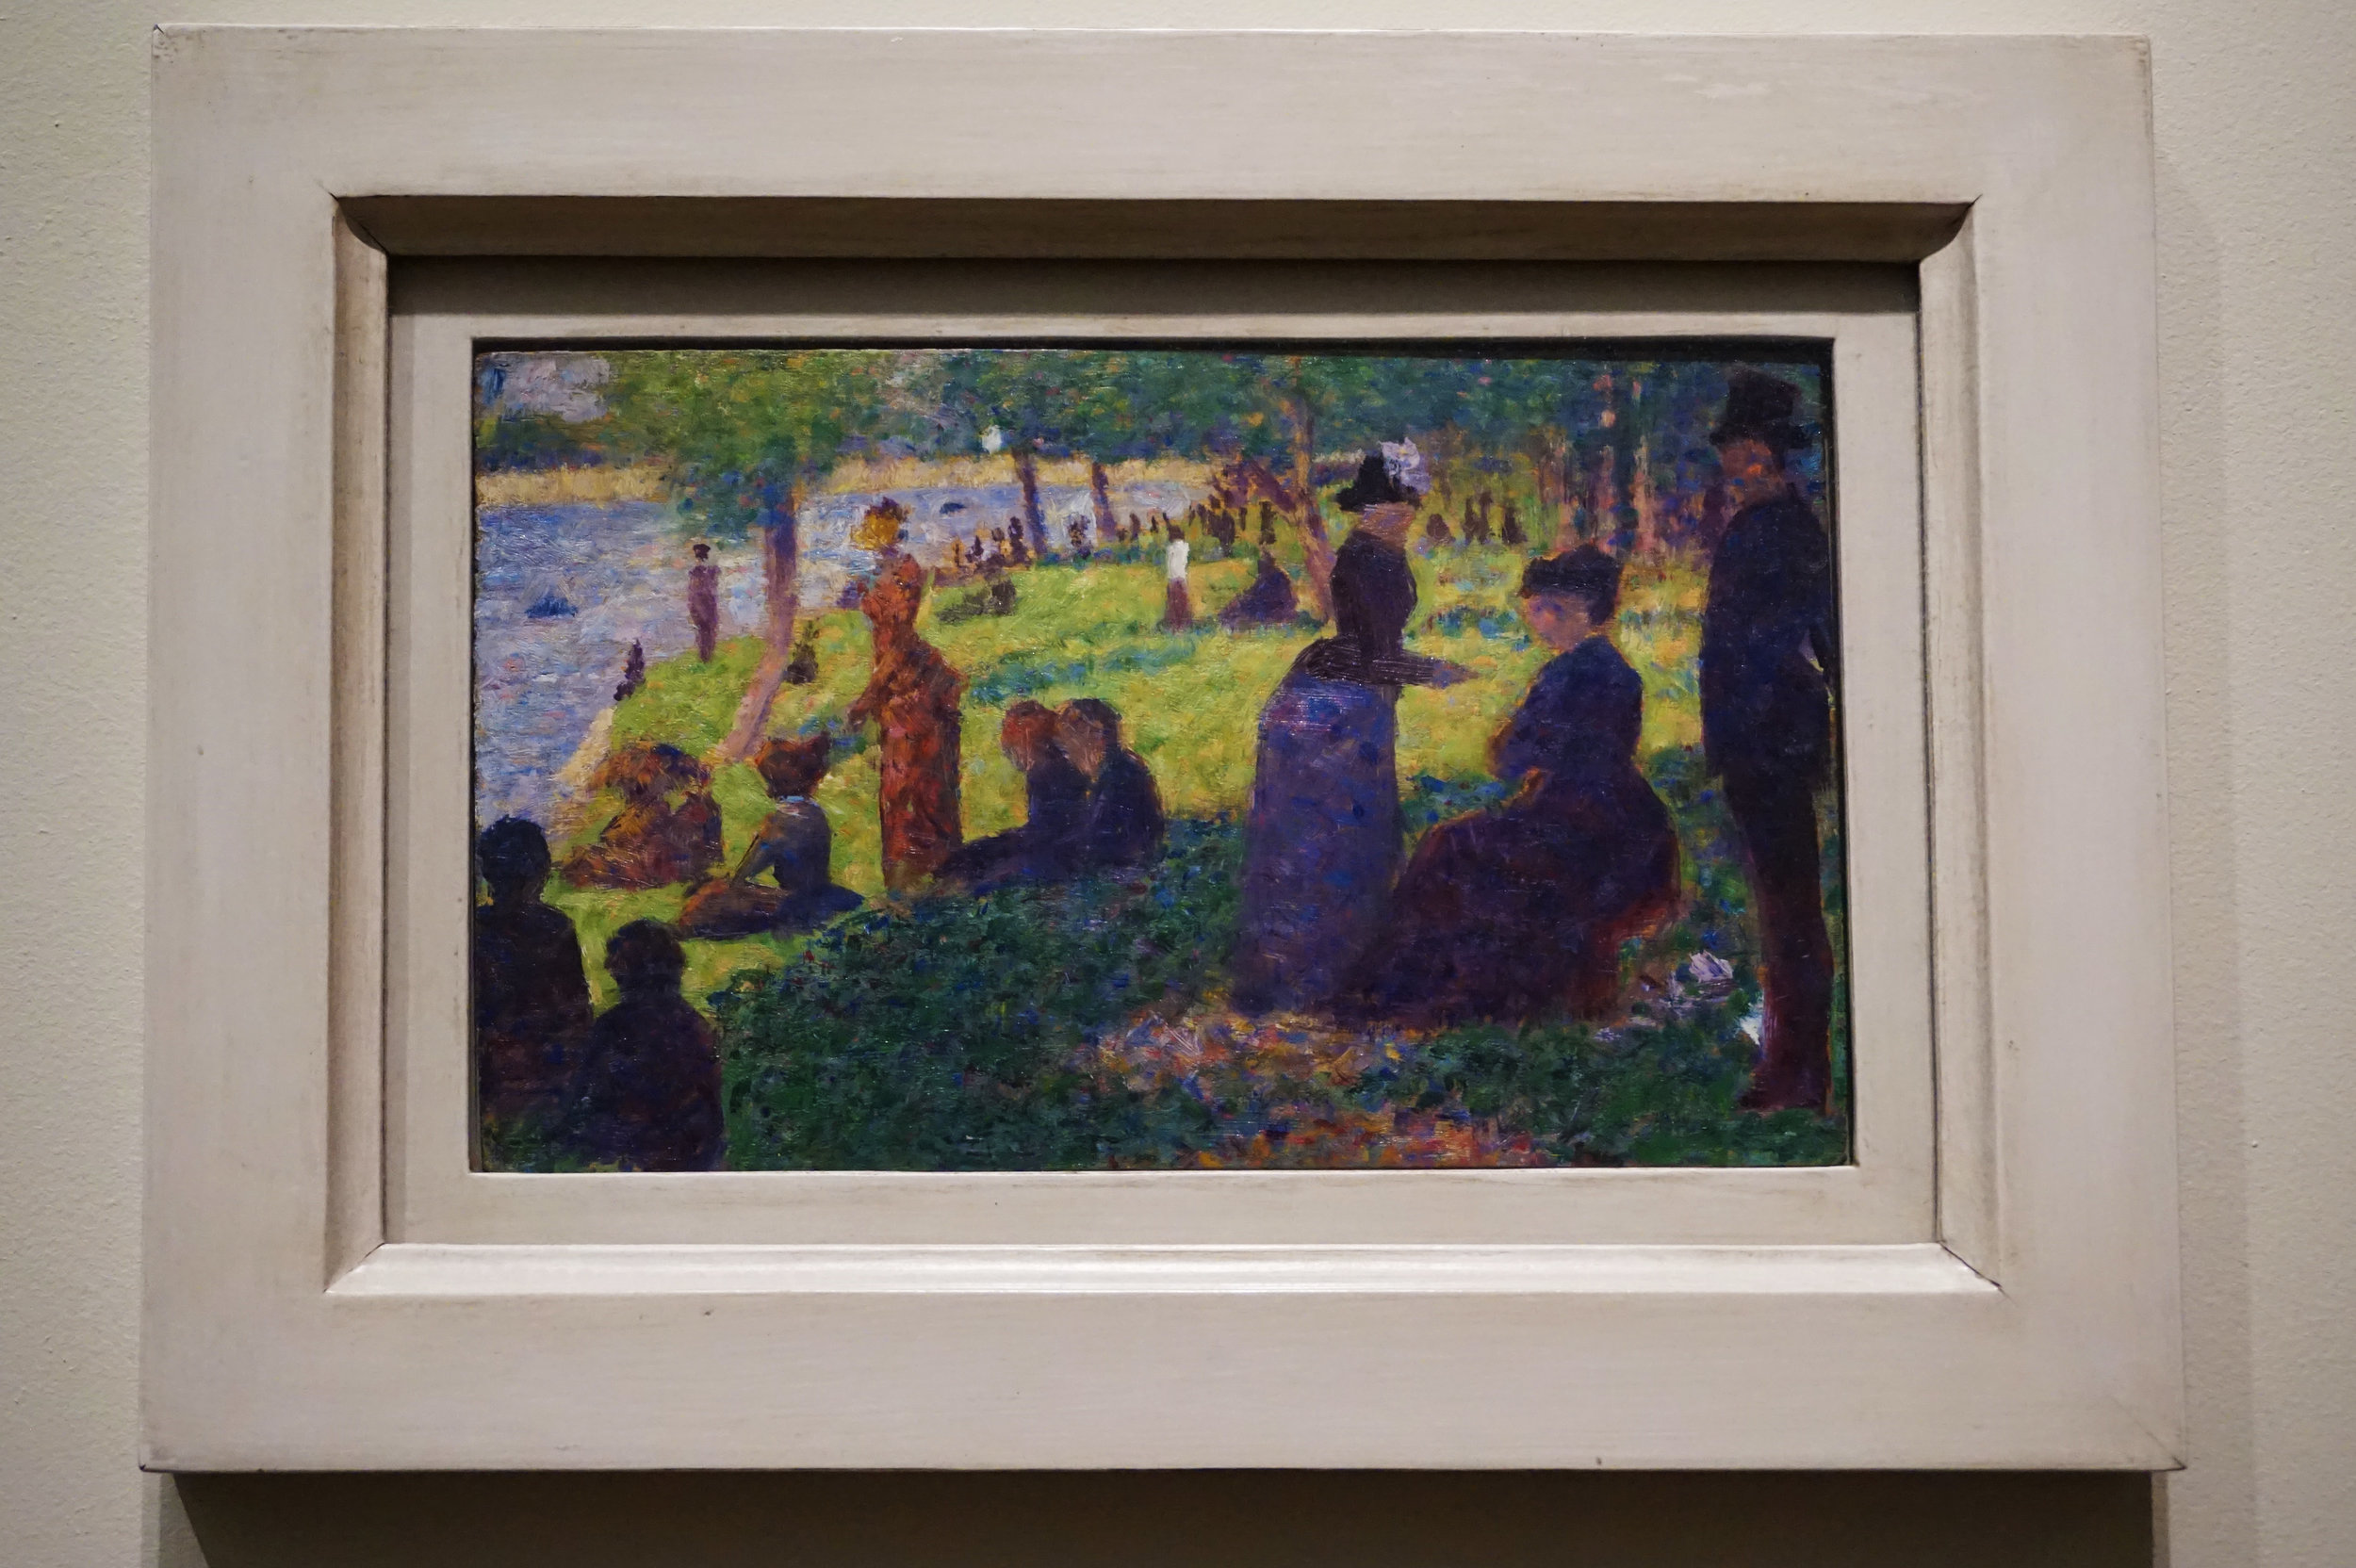 """""""This small oil on a thin wood panel is one of 24 painted studies Georges Seurat made while conceiving the large, celebrated painting  A Sunday on La Grande Jatte  ... Although at first the panel seems close to the larger canvas, its 20 or more figures have little to do with the final composition. The trio at right, for example, with the elderly seated figure, was completely rethought in the final composition, in which a man in a top hat and a woman walking a monkey convey a sense of grand solemnity and wry humor—a sophisticated irony that is completely absent in the clumsily positioned figures of the oil panel."""""""